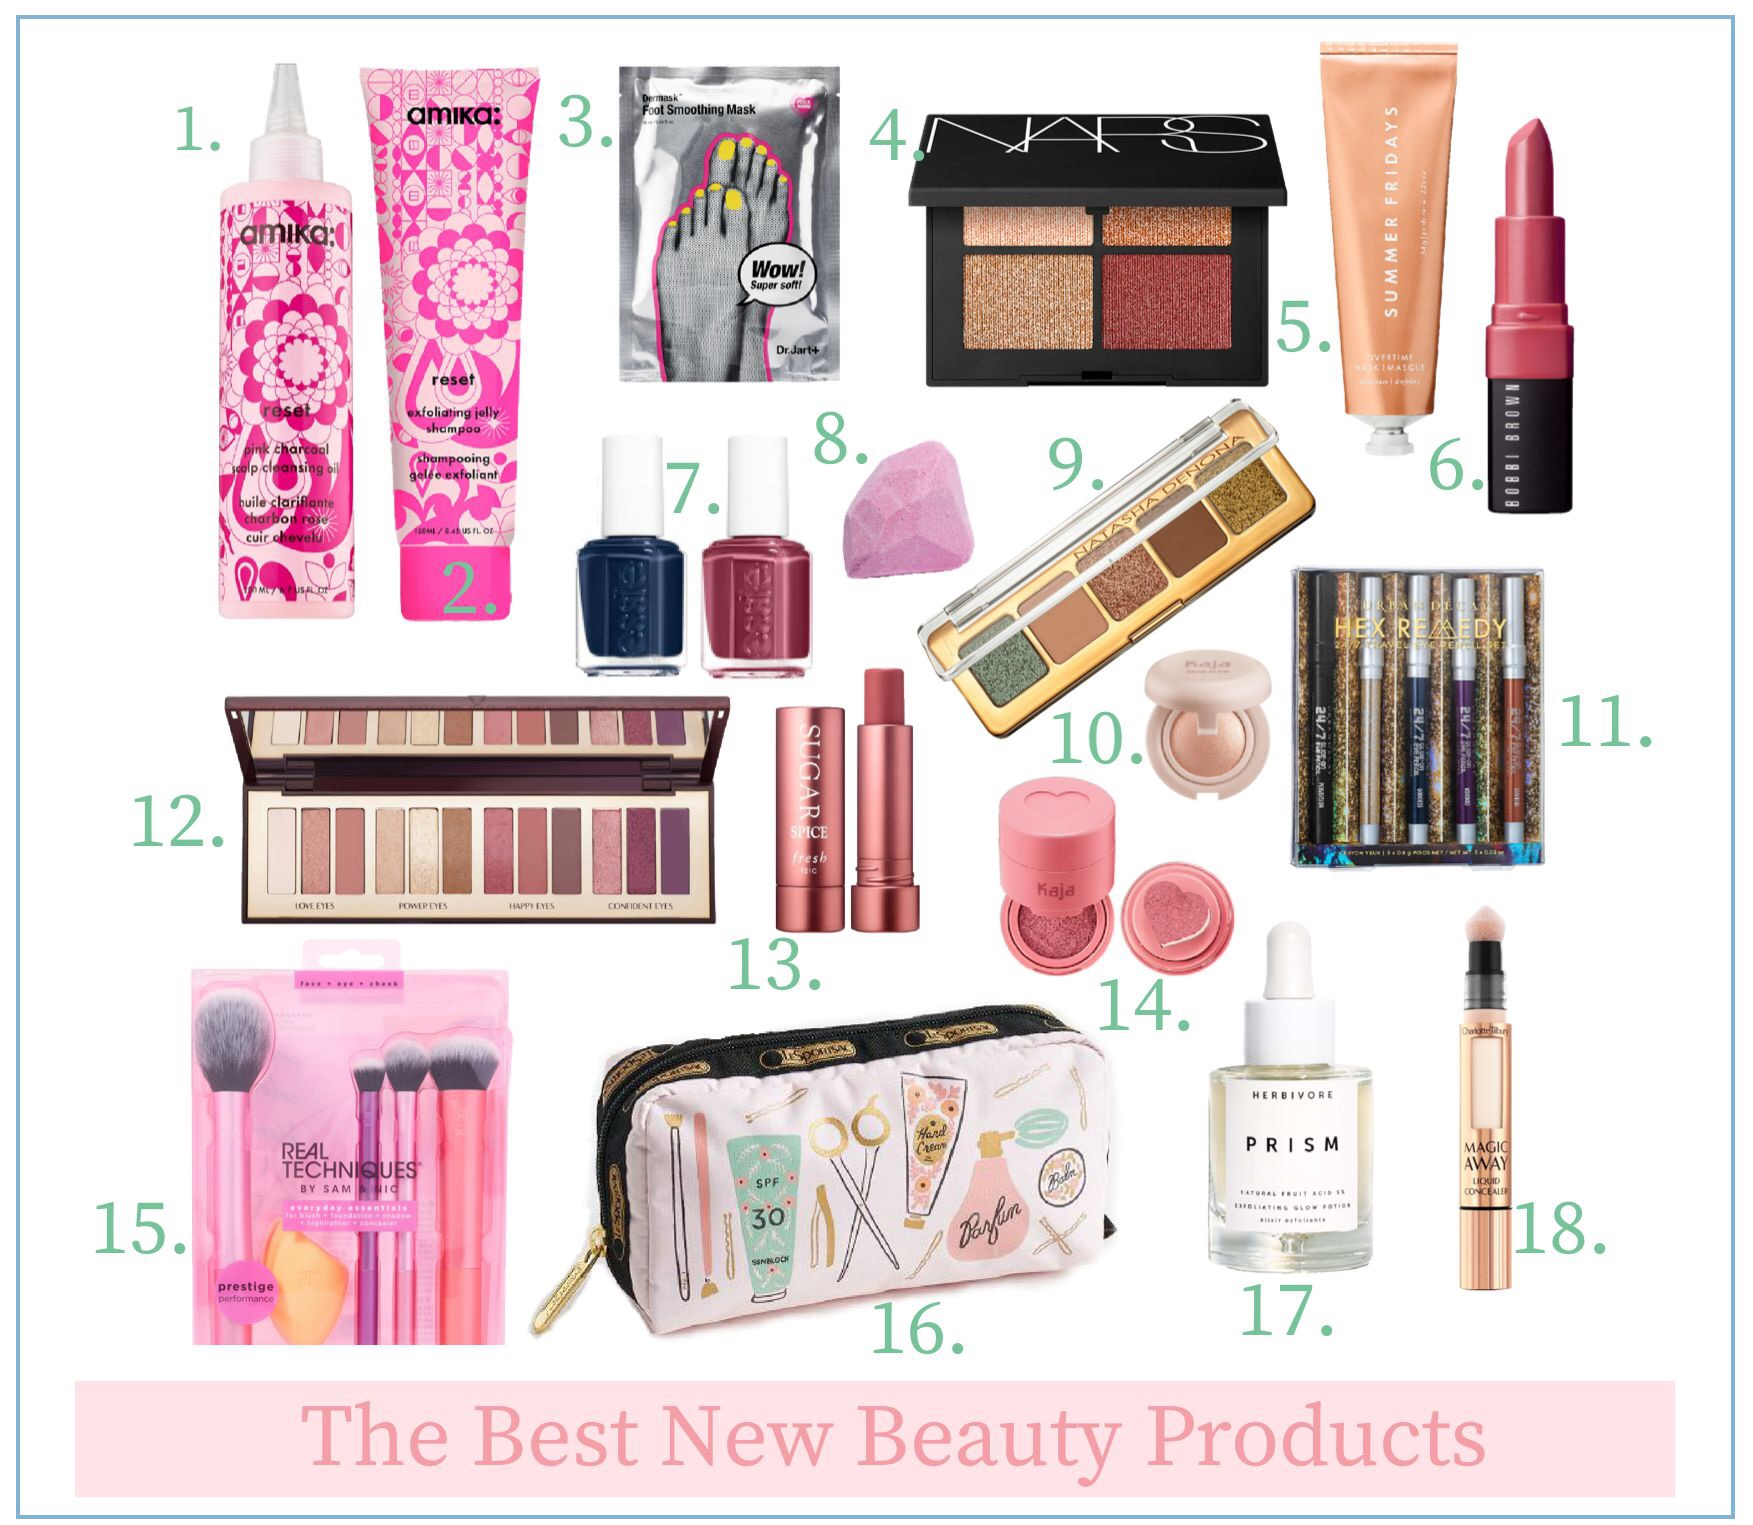 The Best New Beauty Products